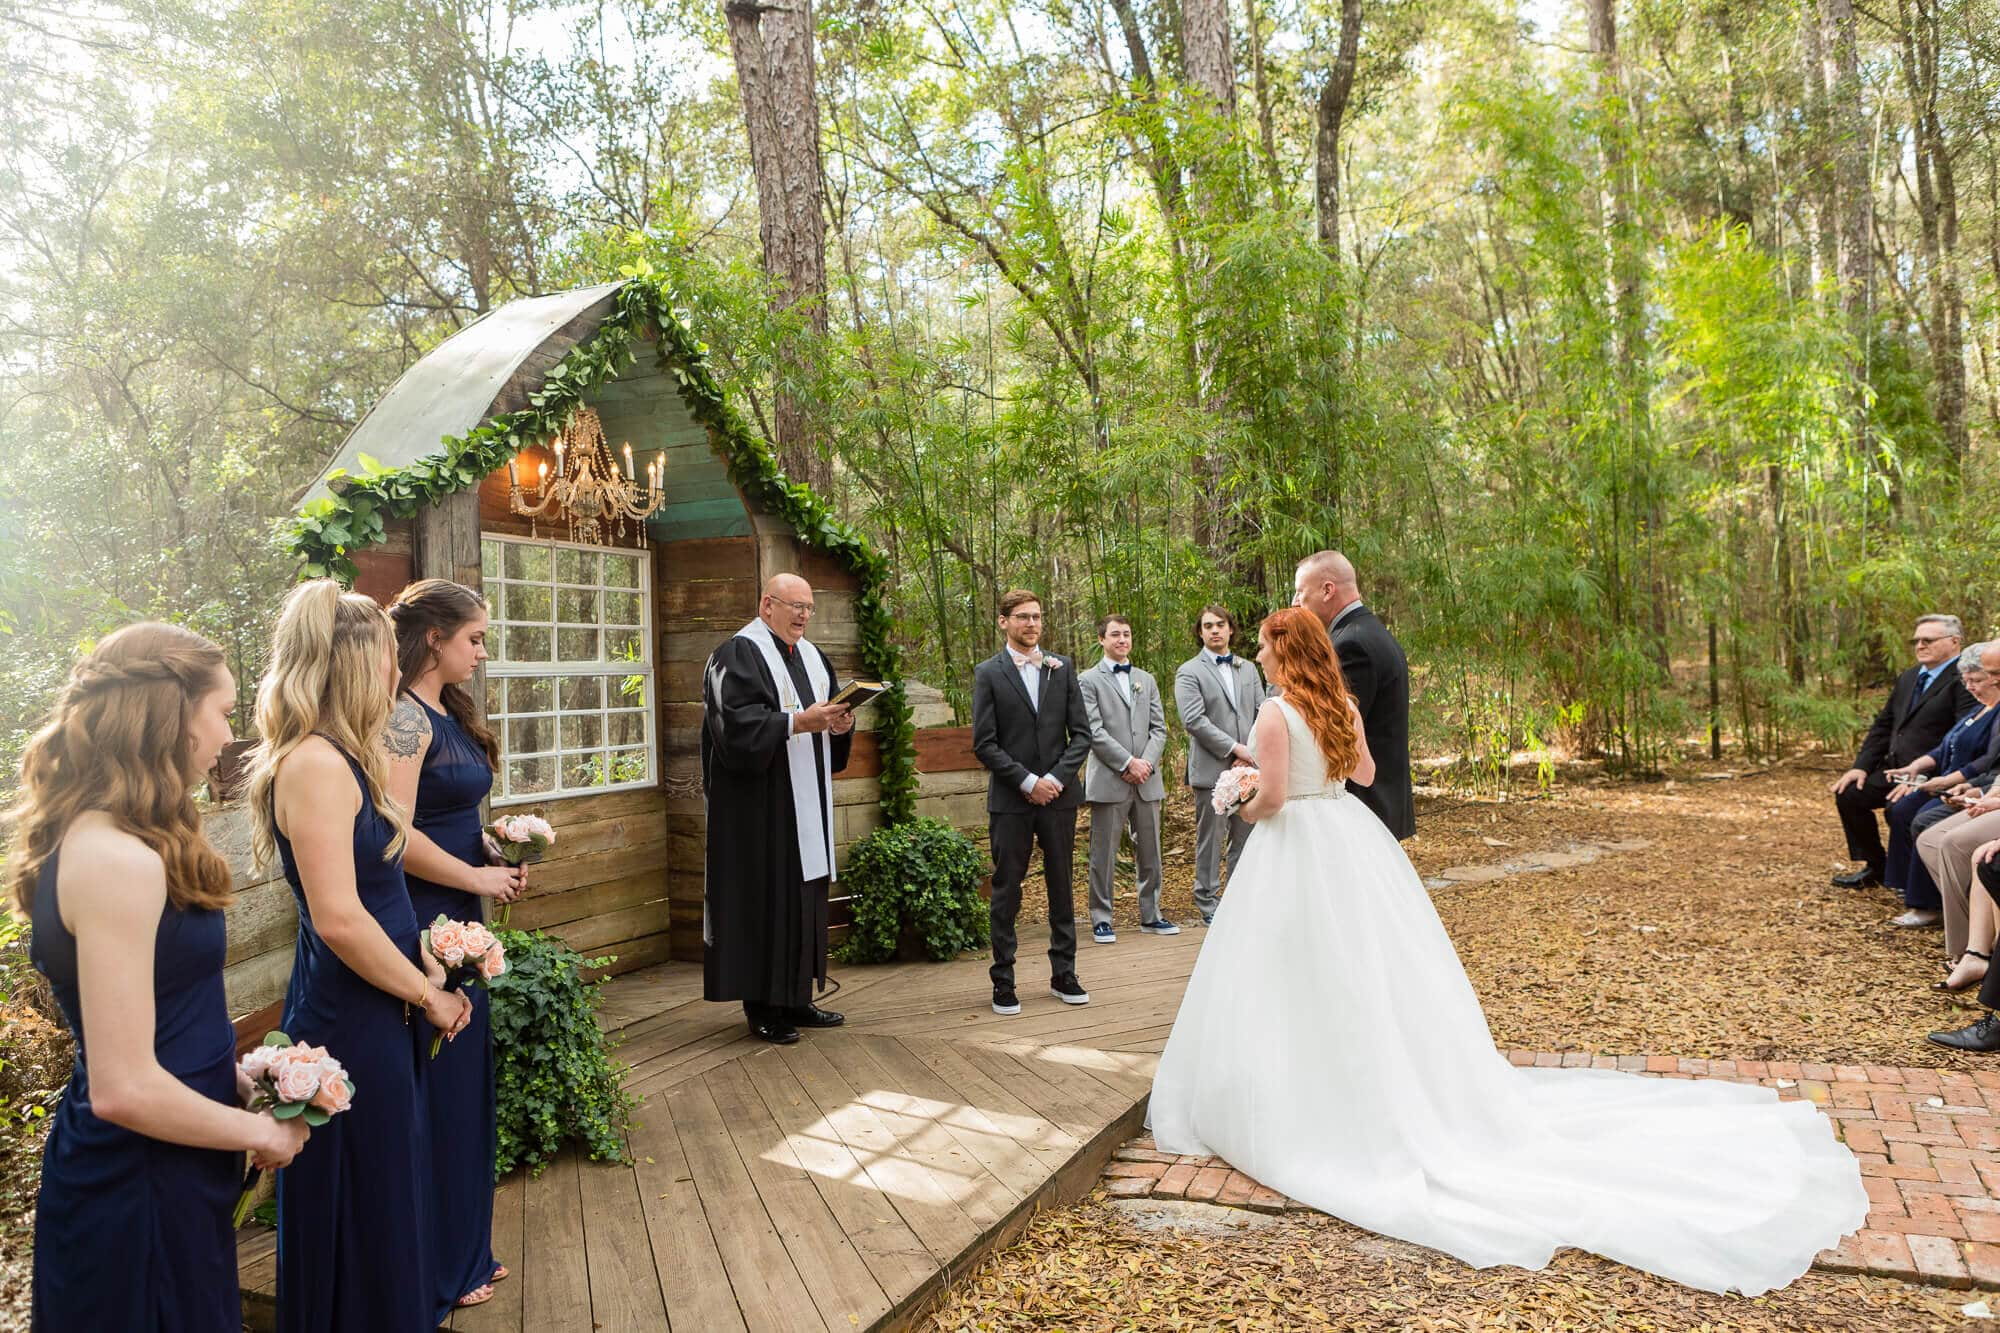 Lori Barbely Photography, wedding ceremony outside in the woods